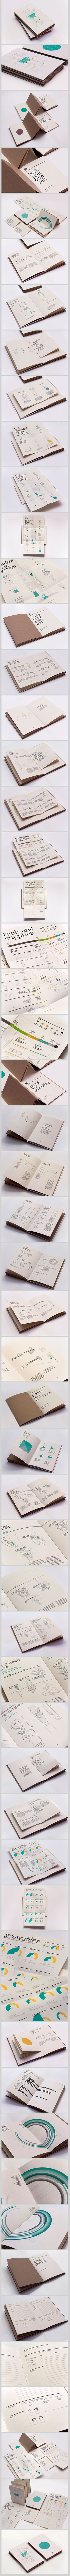 Window Farms: Information Design Book by Jiani Lu on Béhance